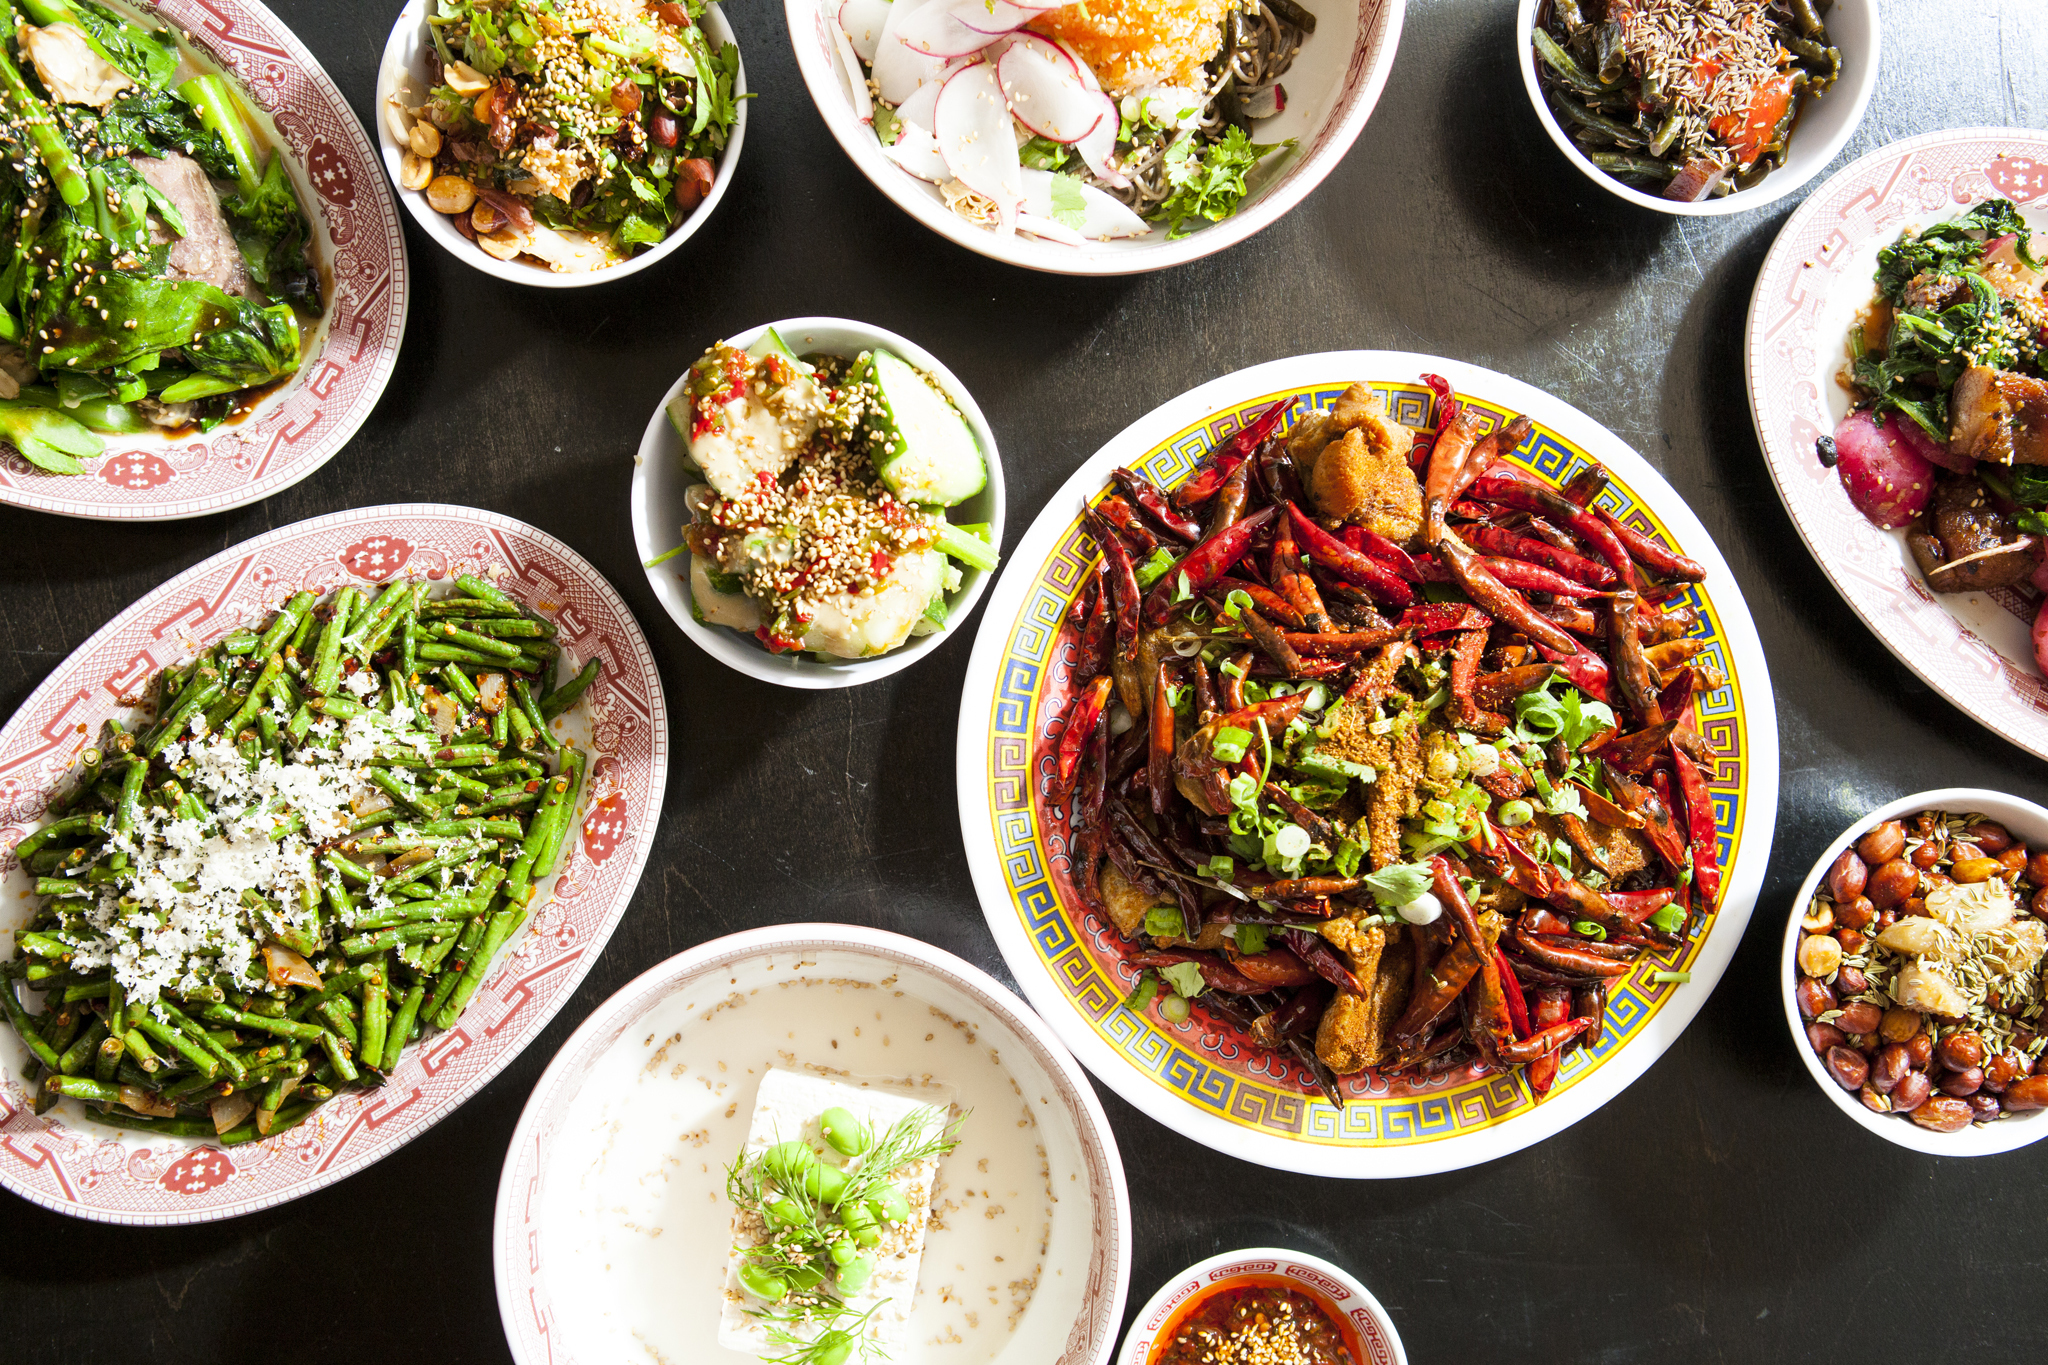 Mission chinese food opens on the lower east side for Accord asian cuisine ny